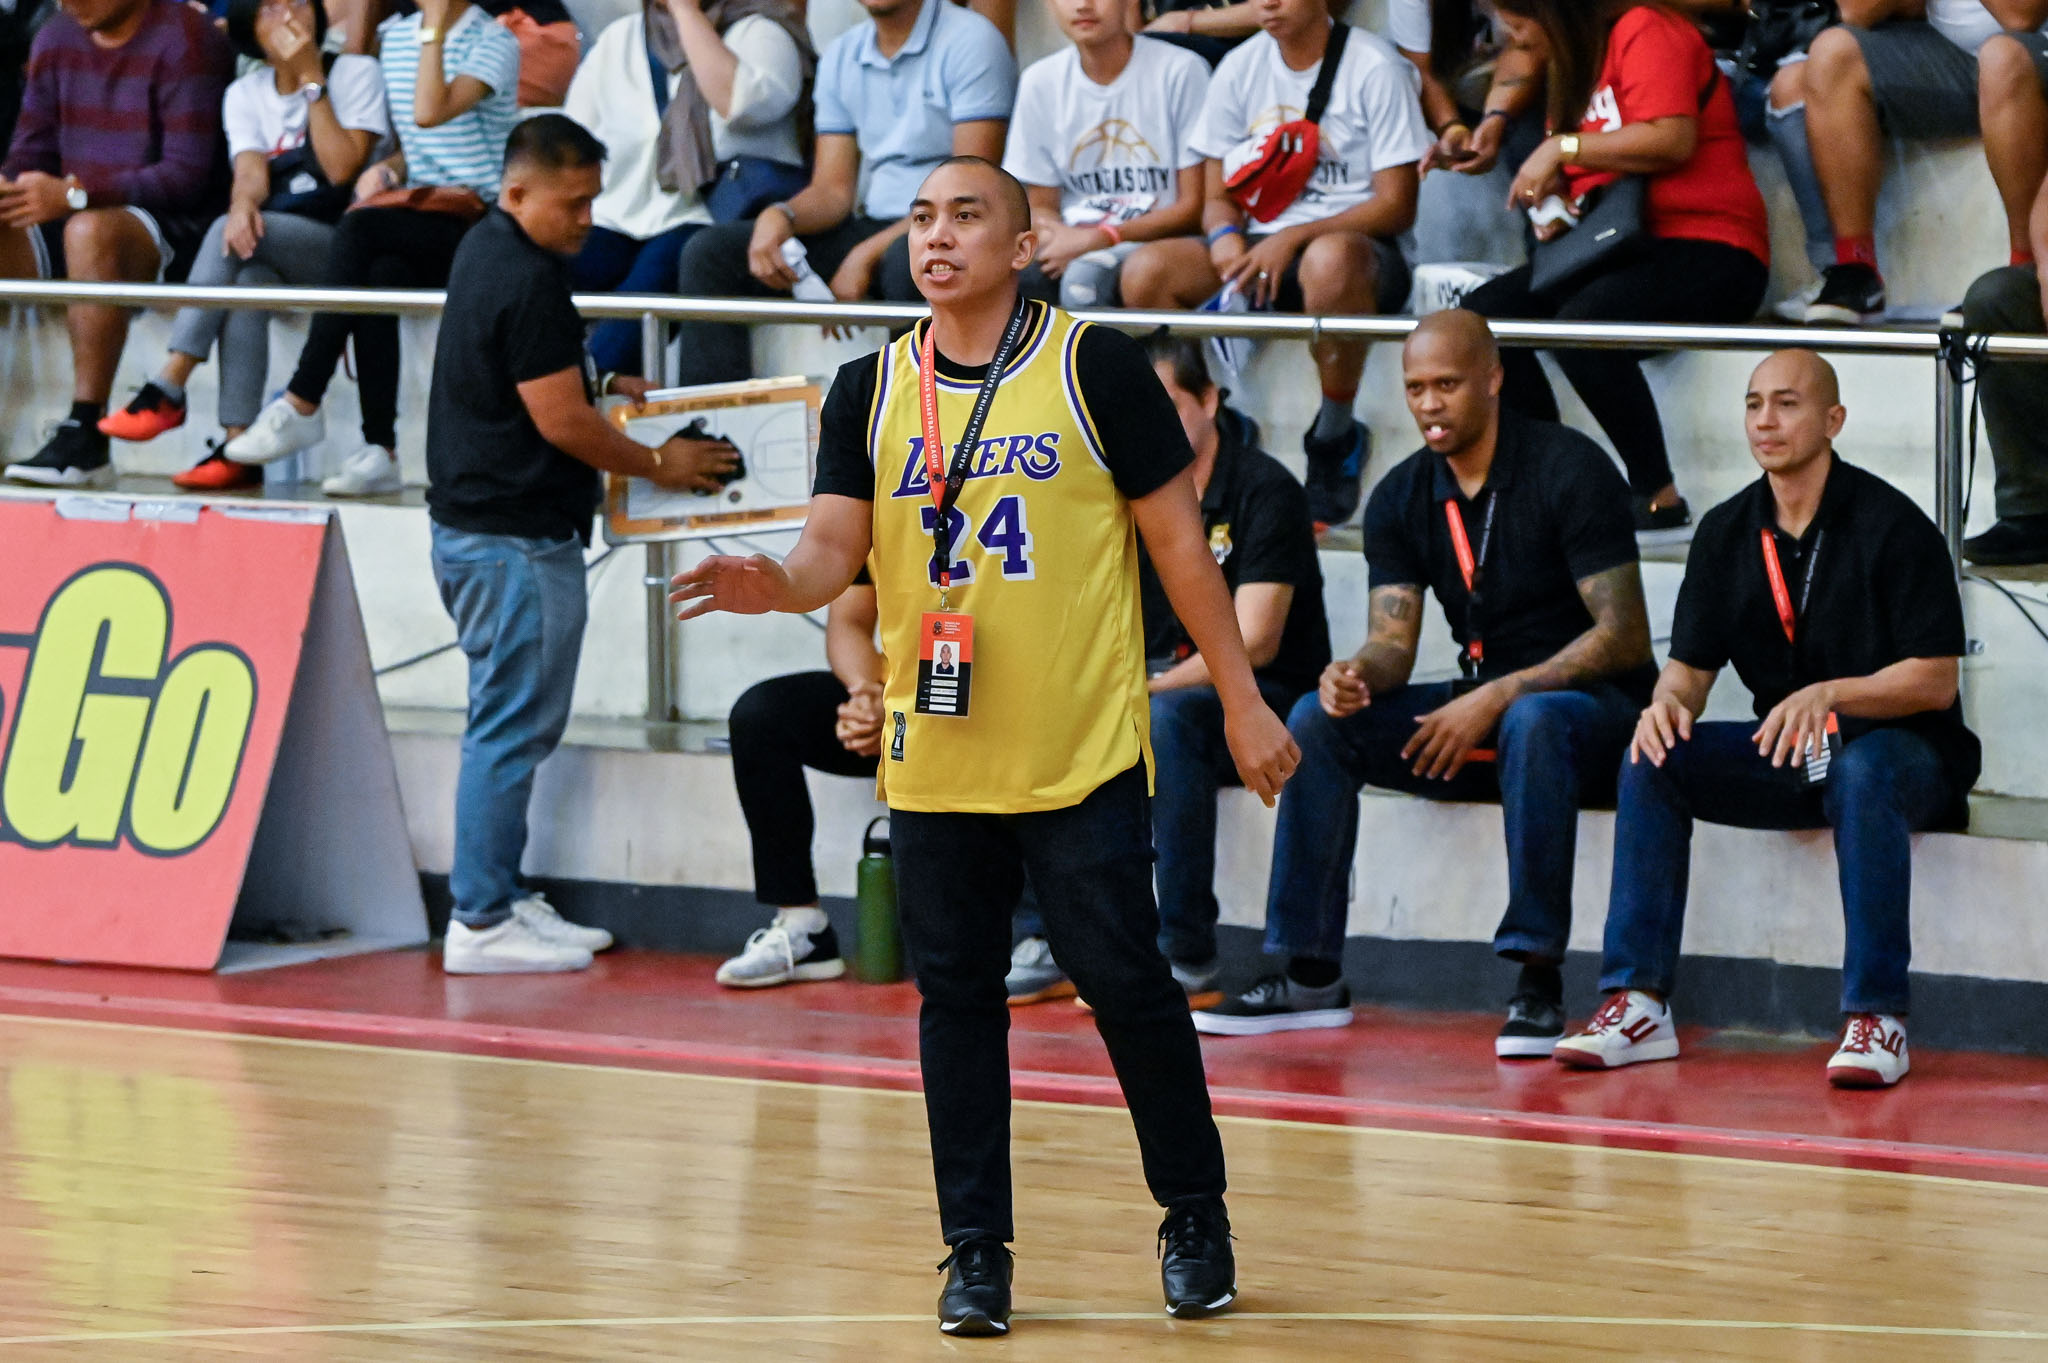 Tiebreaker Times LA-born coach Don Dulay wears Kobe Bryant jersey during Davao Occi game Basketball MPBL News  Kobe Bryant Don Dulay Davao Occidental Tigers 2019-20 MPBL Lakan Cup